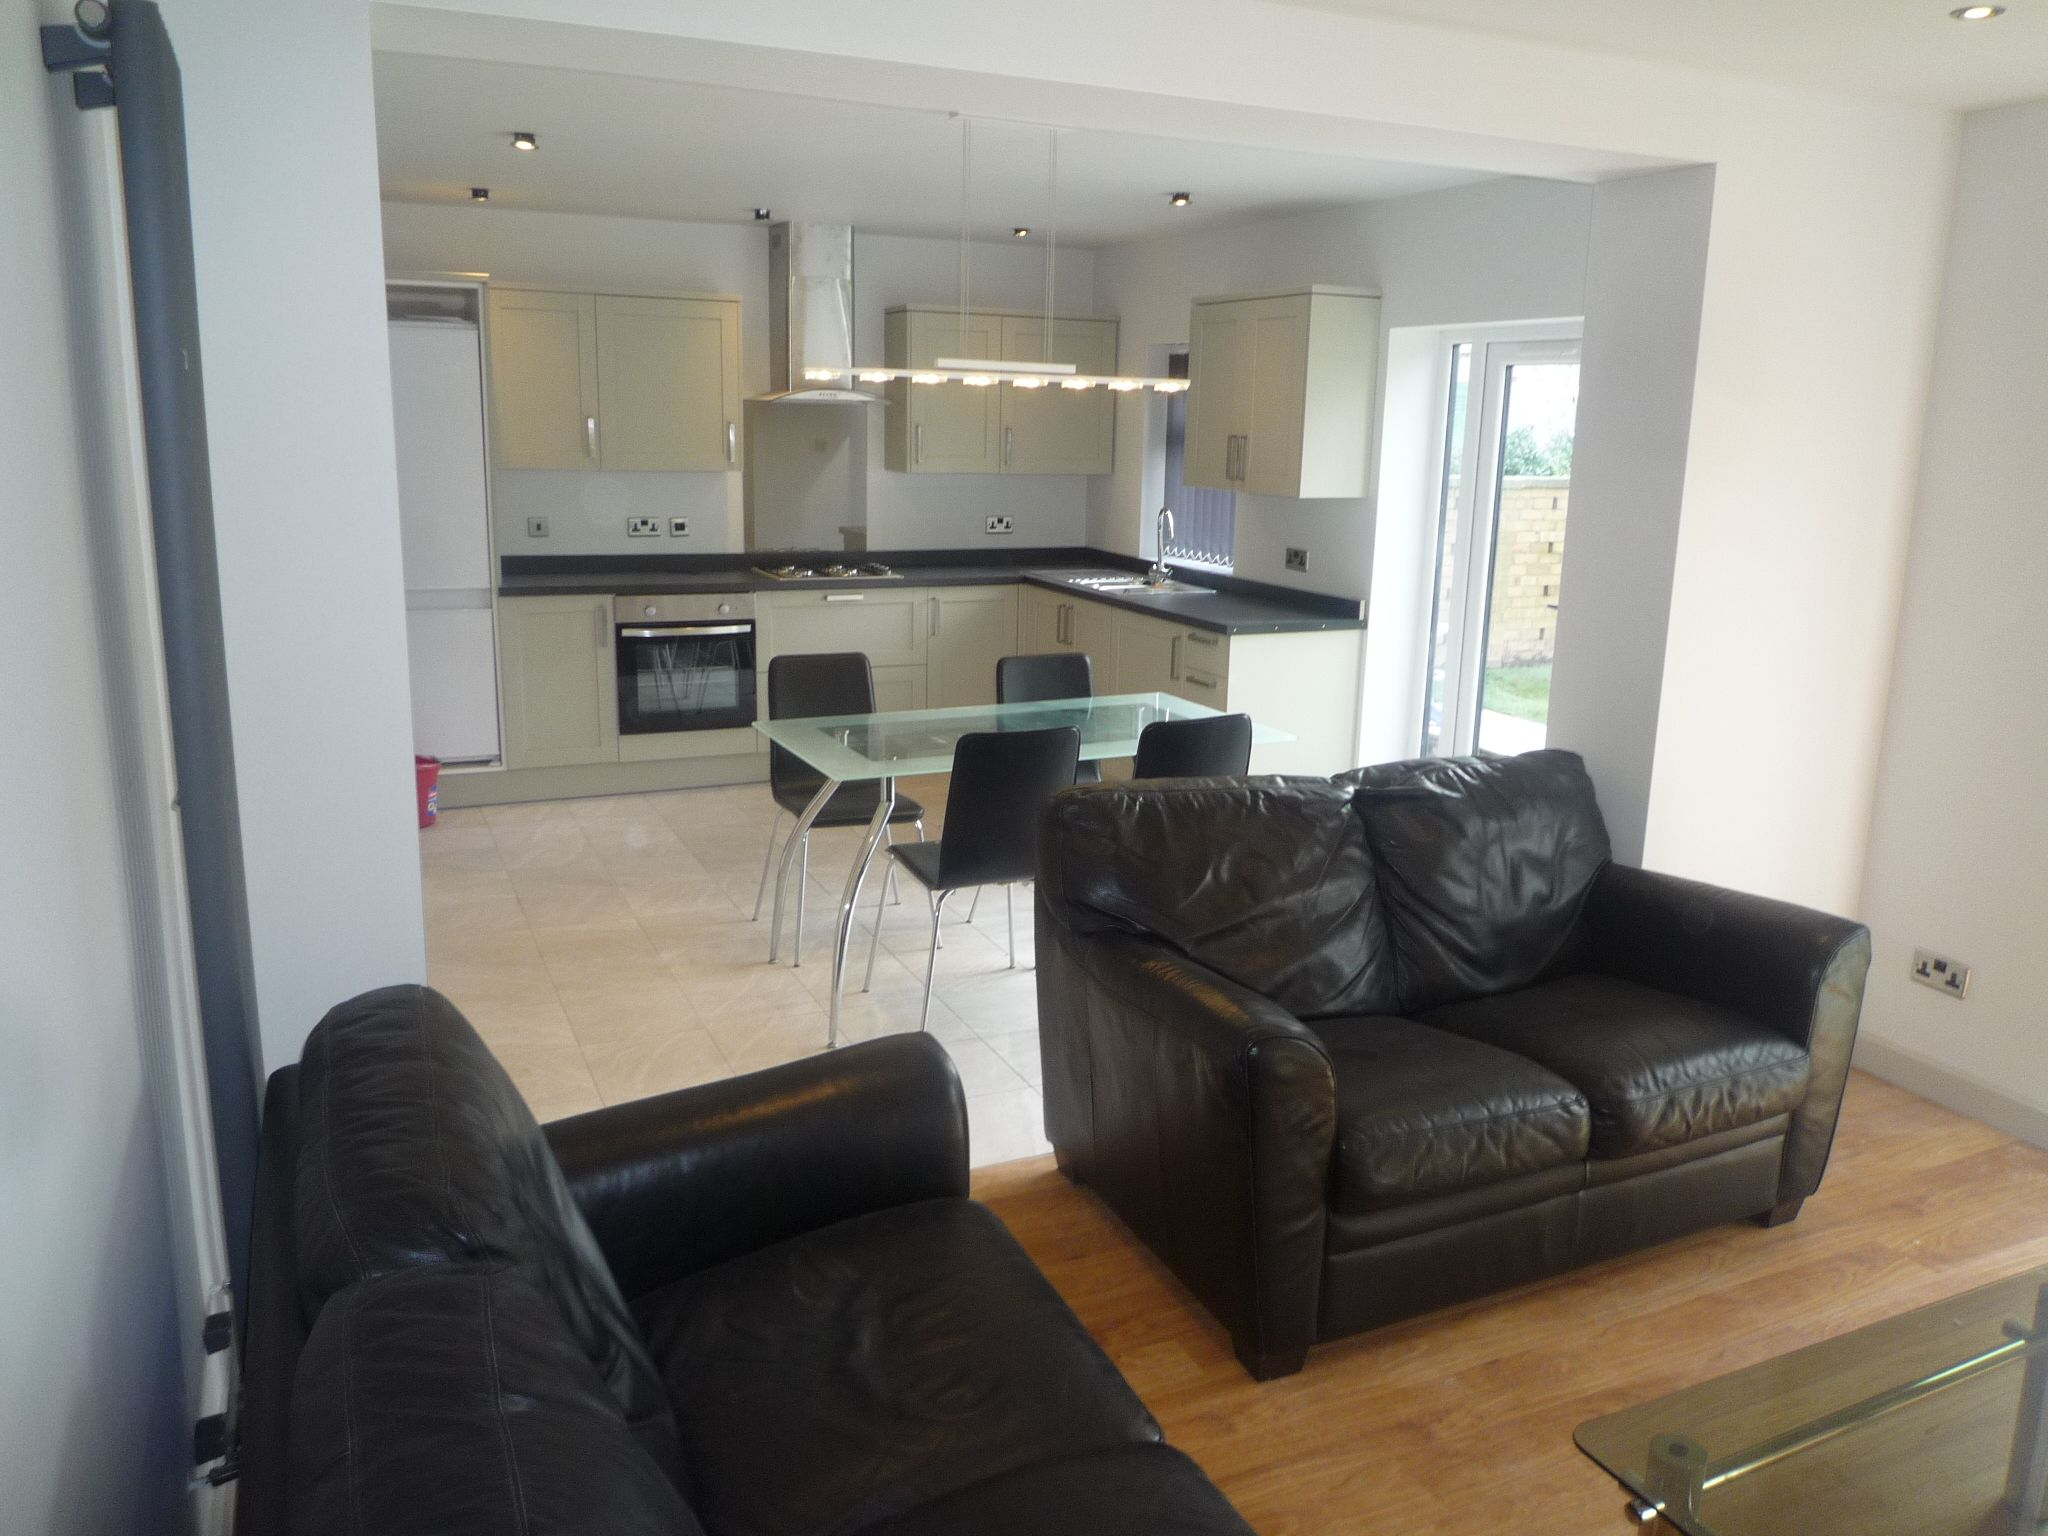 1 bedroom shared house Let in Manchester - Photograph 4.